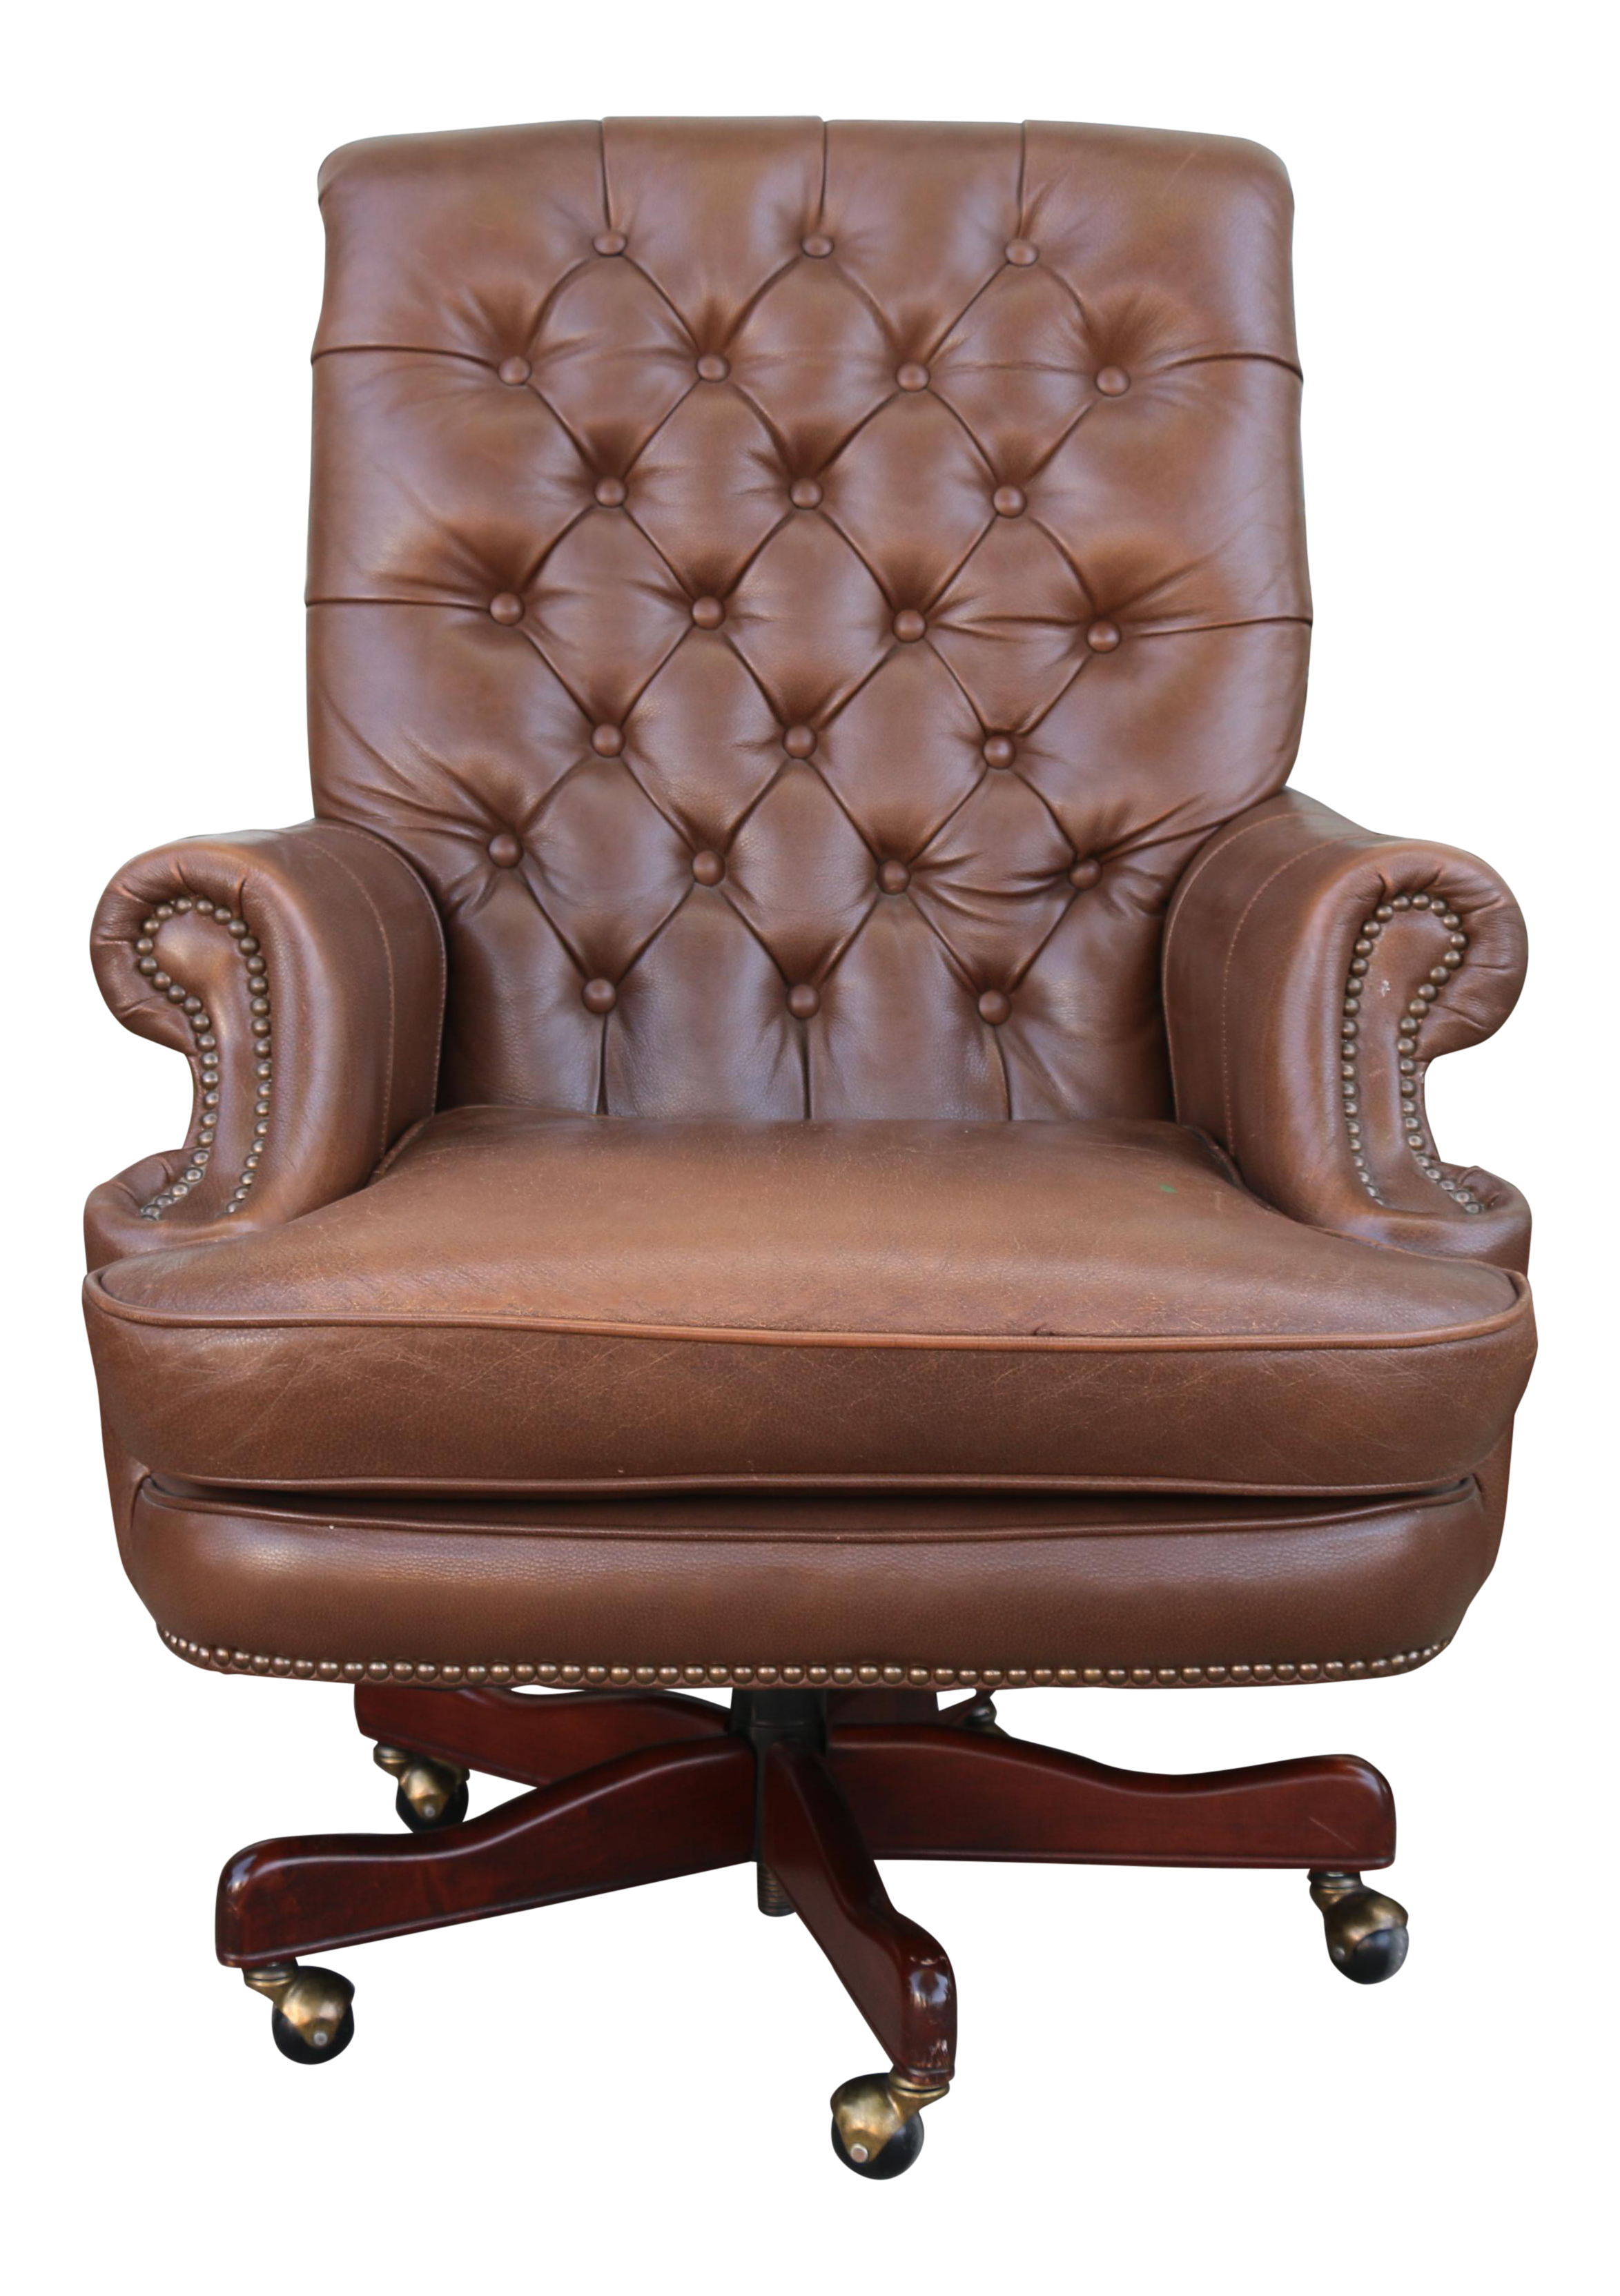 Tremendous Bradington Young Executive Leather Chair Pdpeps Interior Chair Design Pdpepsorg